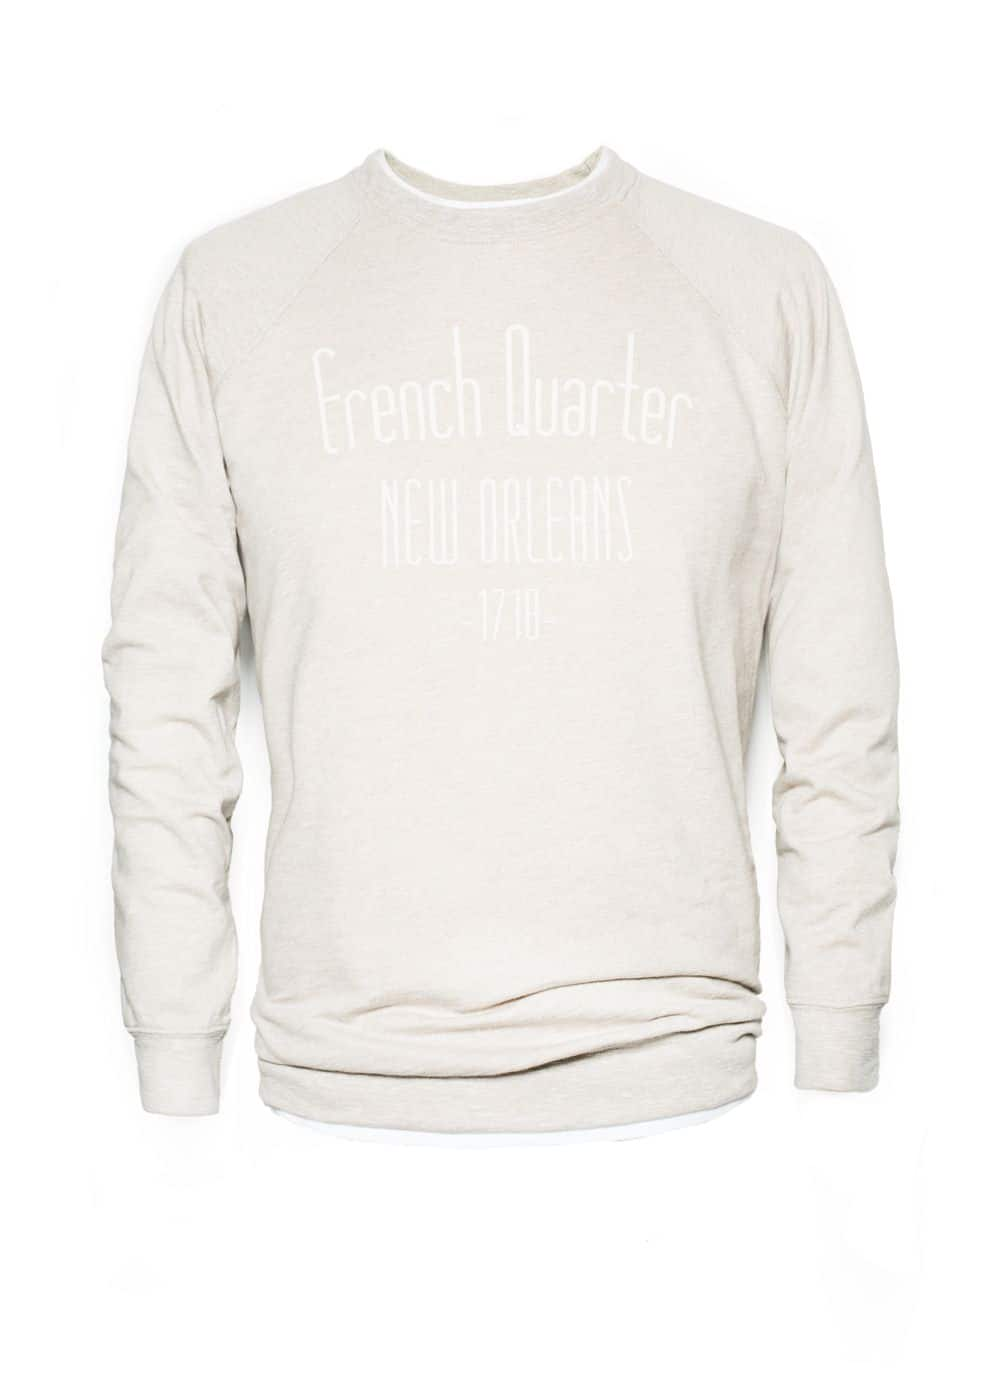 New Orleans sweatshirt